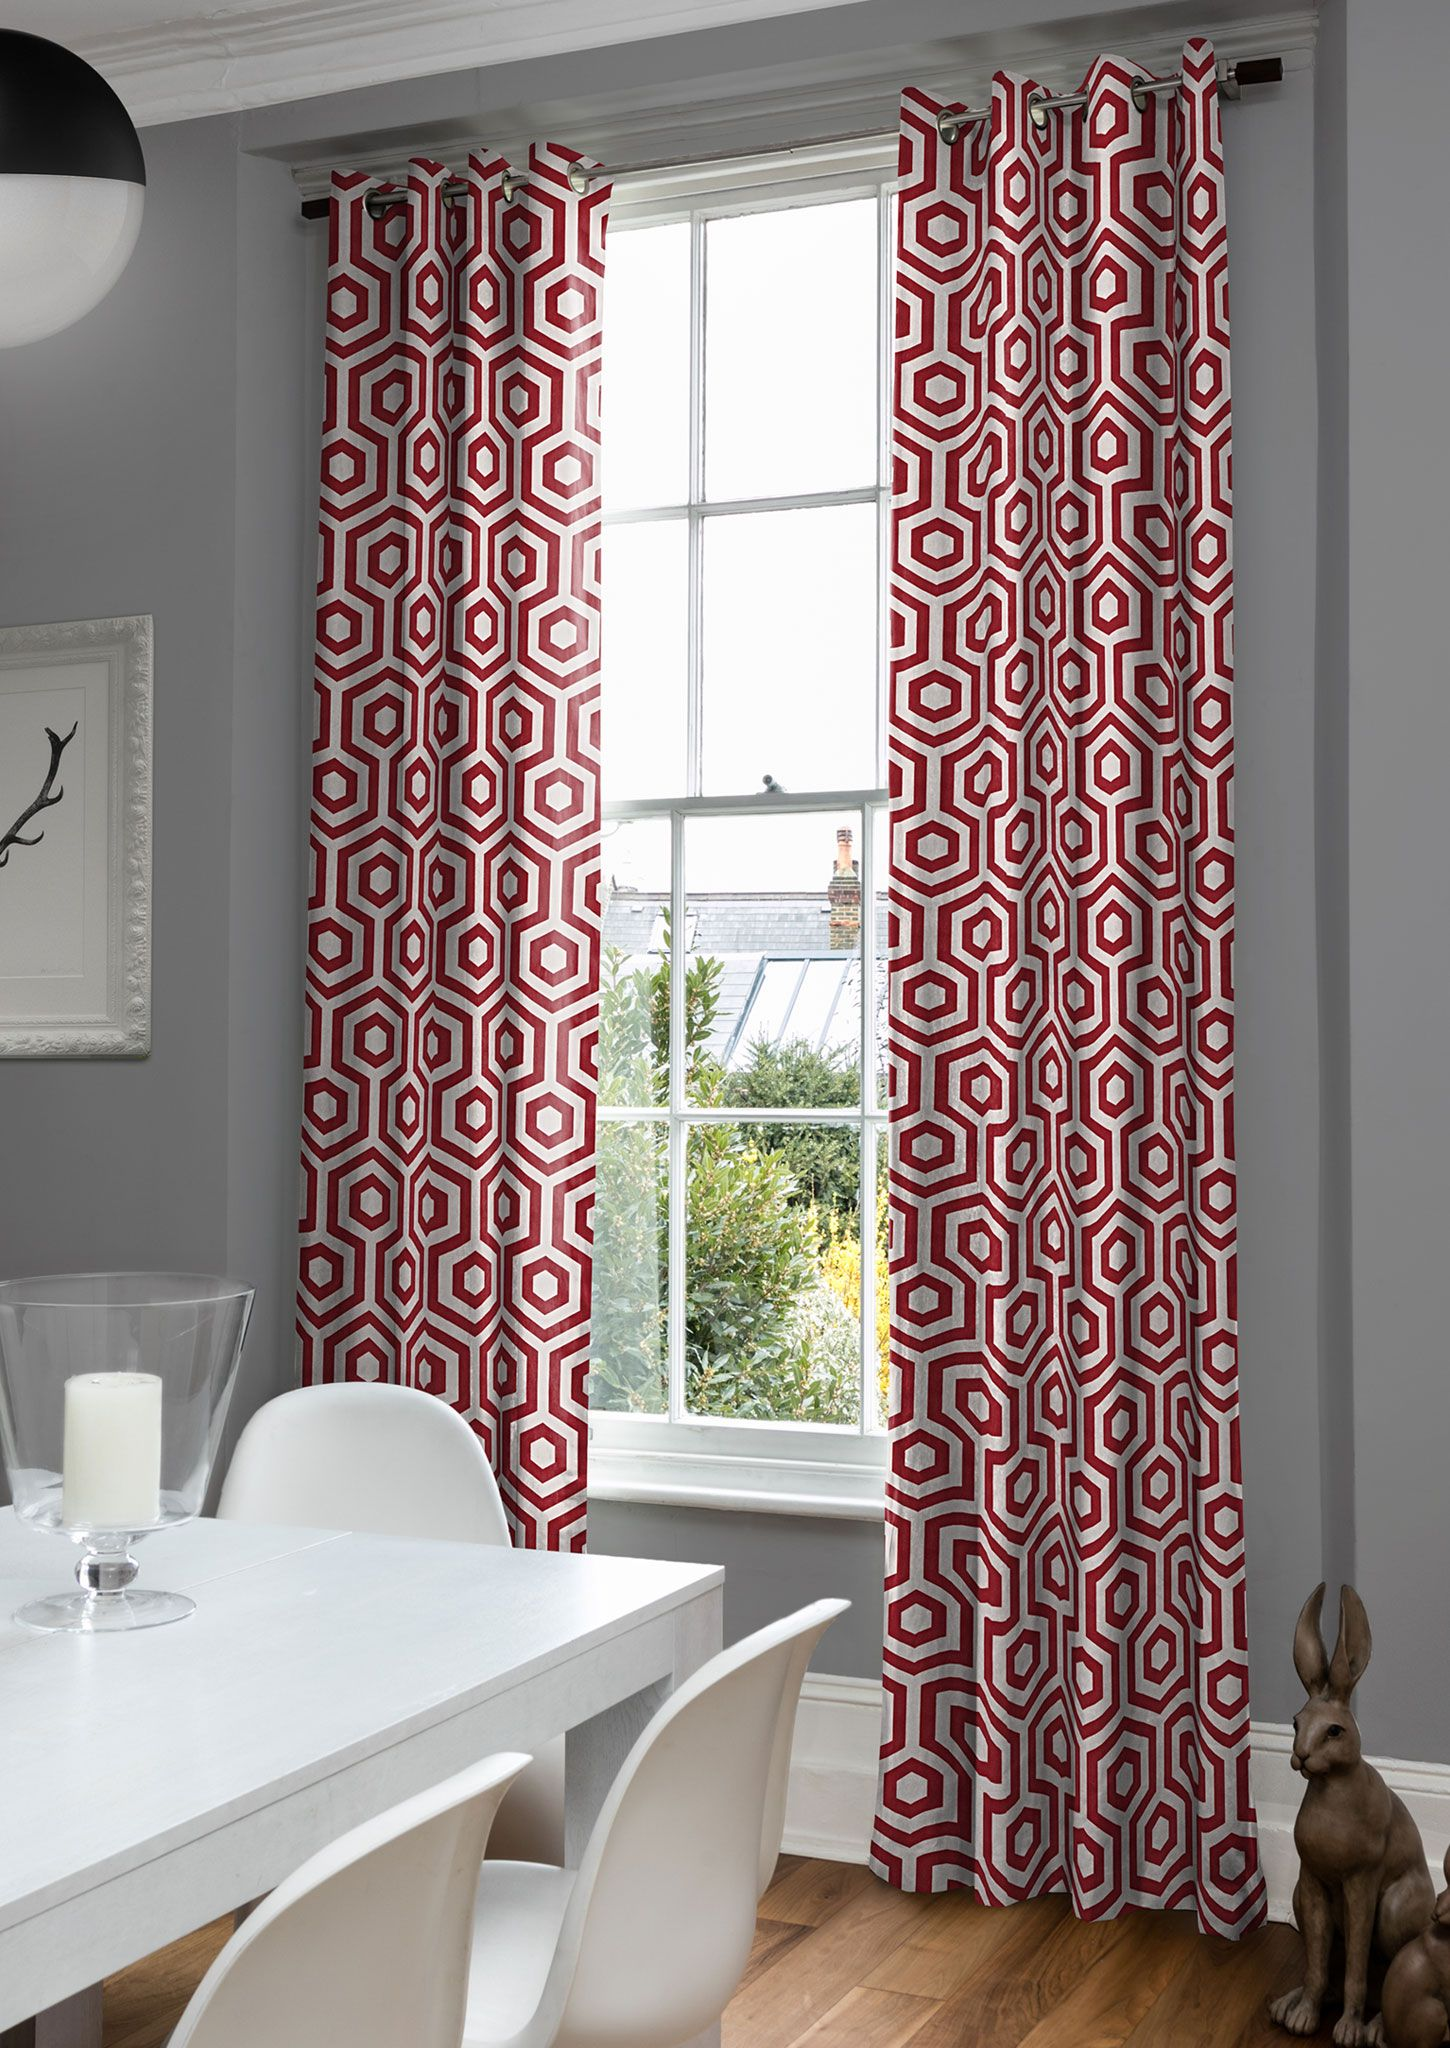 Moderne Pendant Geometric Curtains In Red And White With A Eye